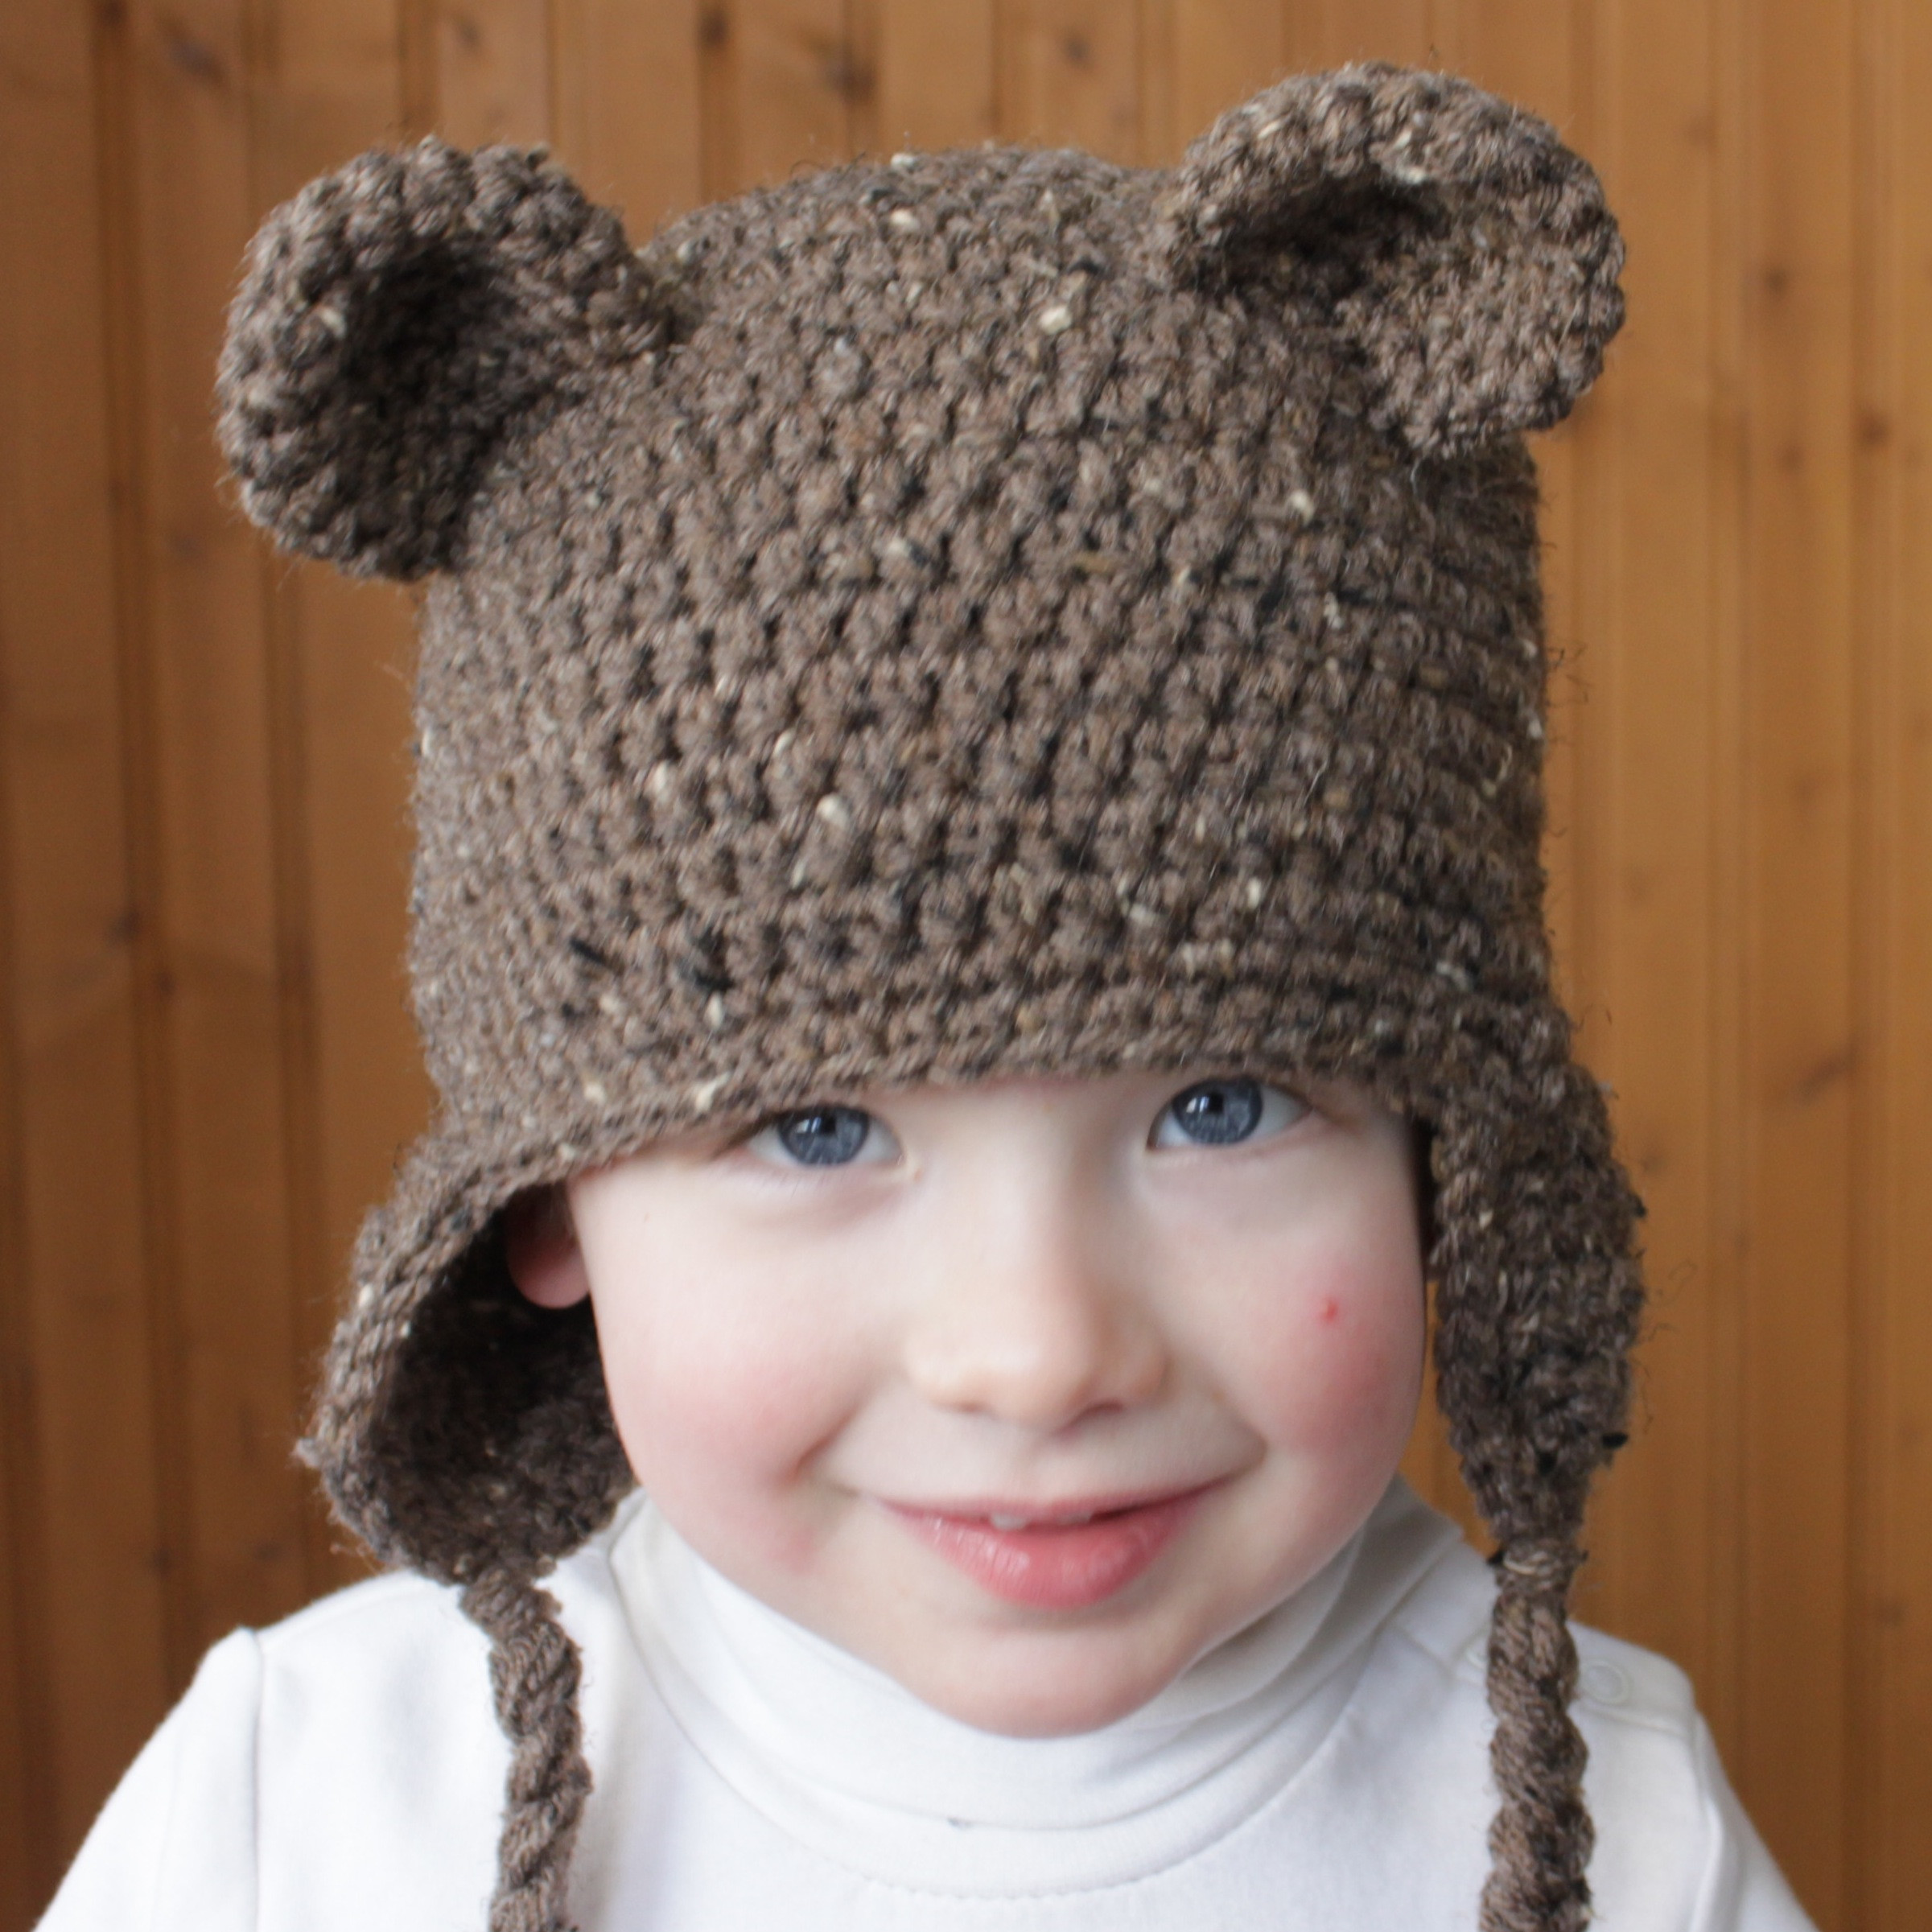 Best Of 34 Crochet Teddy Bear Patterns Crochet toddler Hat Pattern Of Delightful 40 Ideas Crochet toddler Hat Pattern